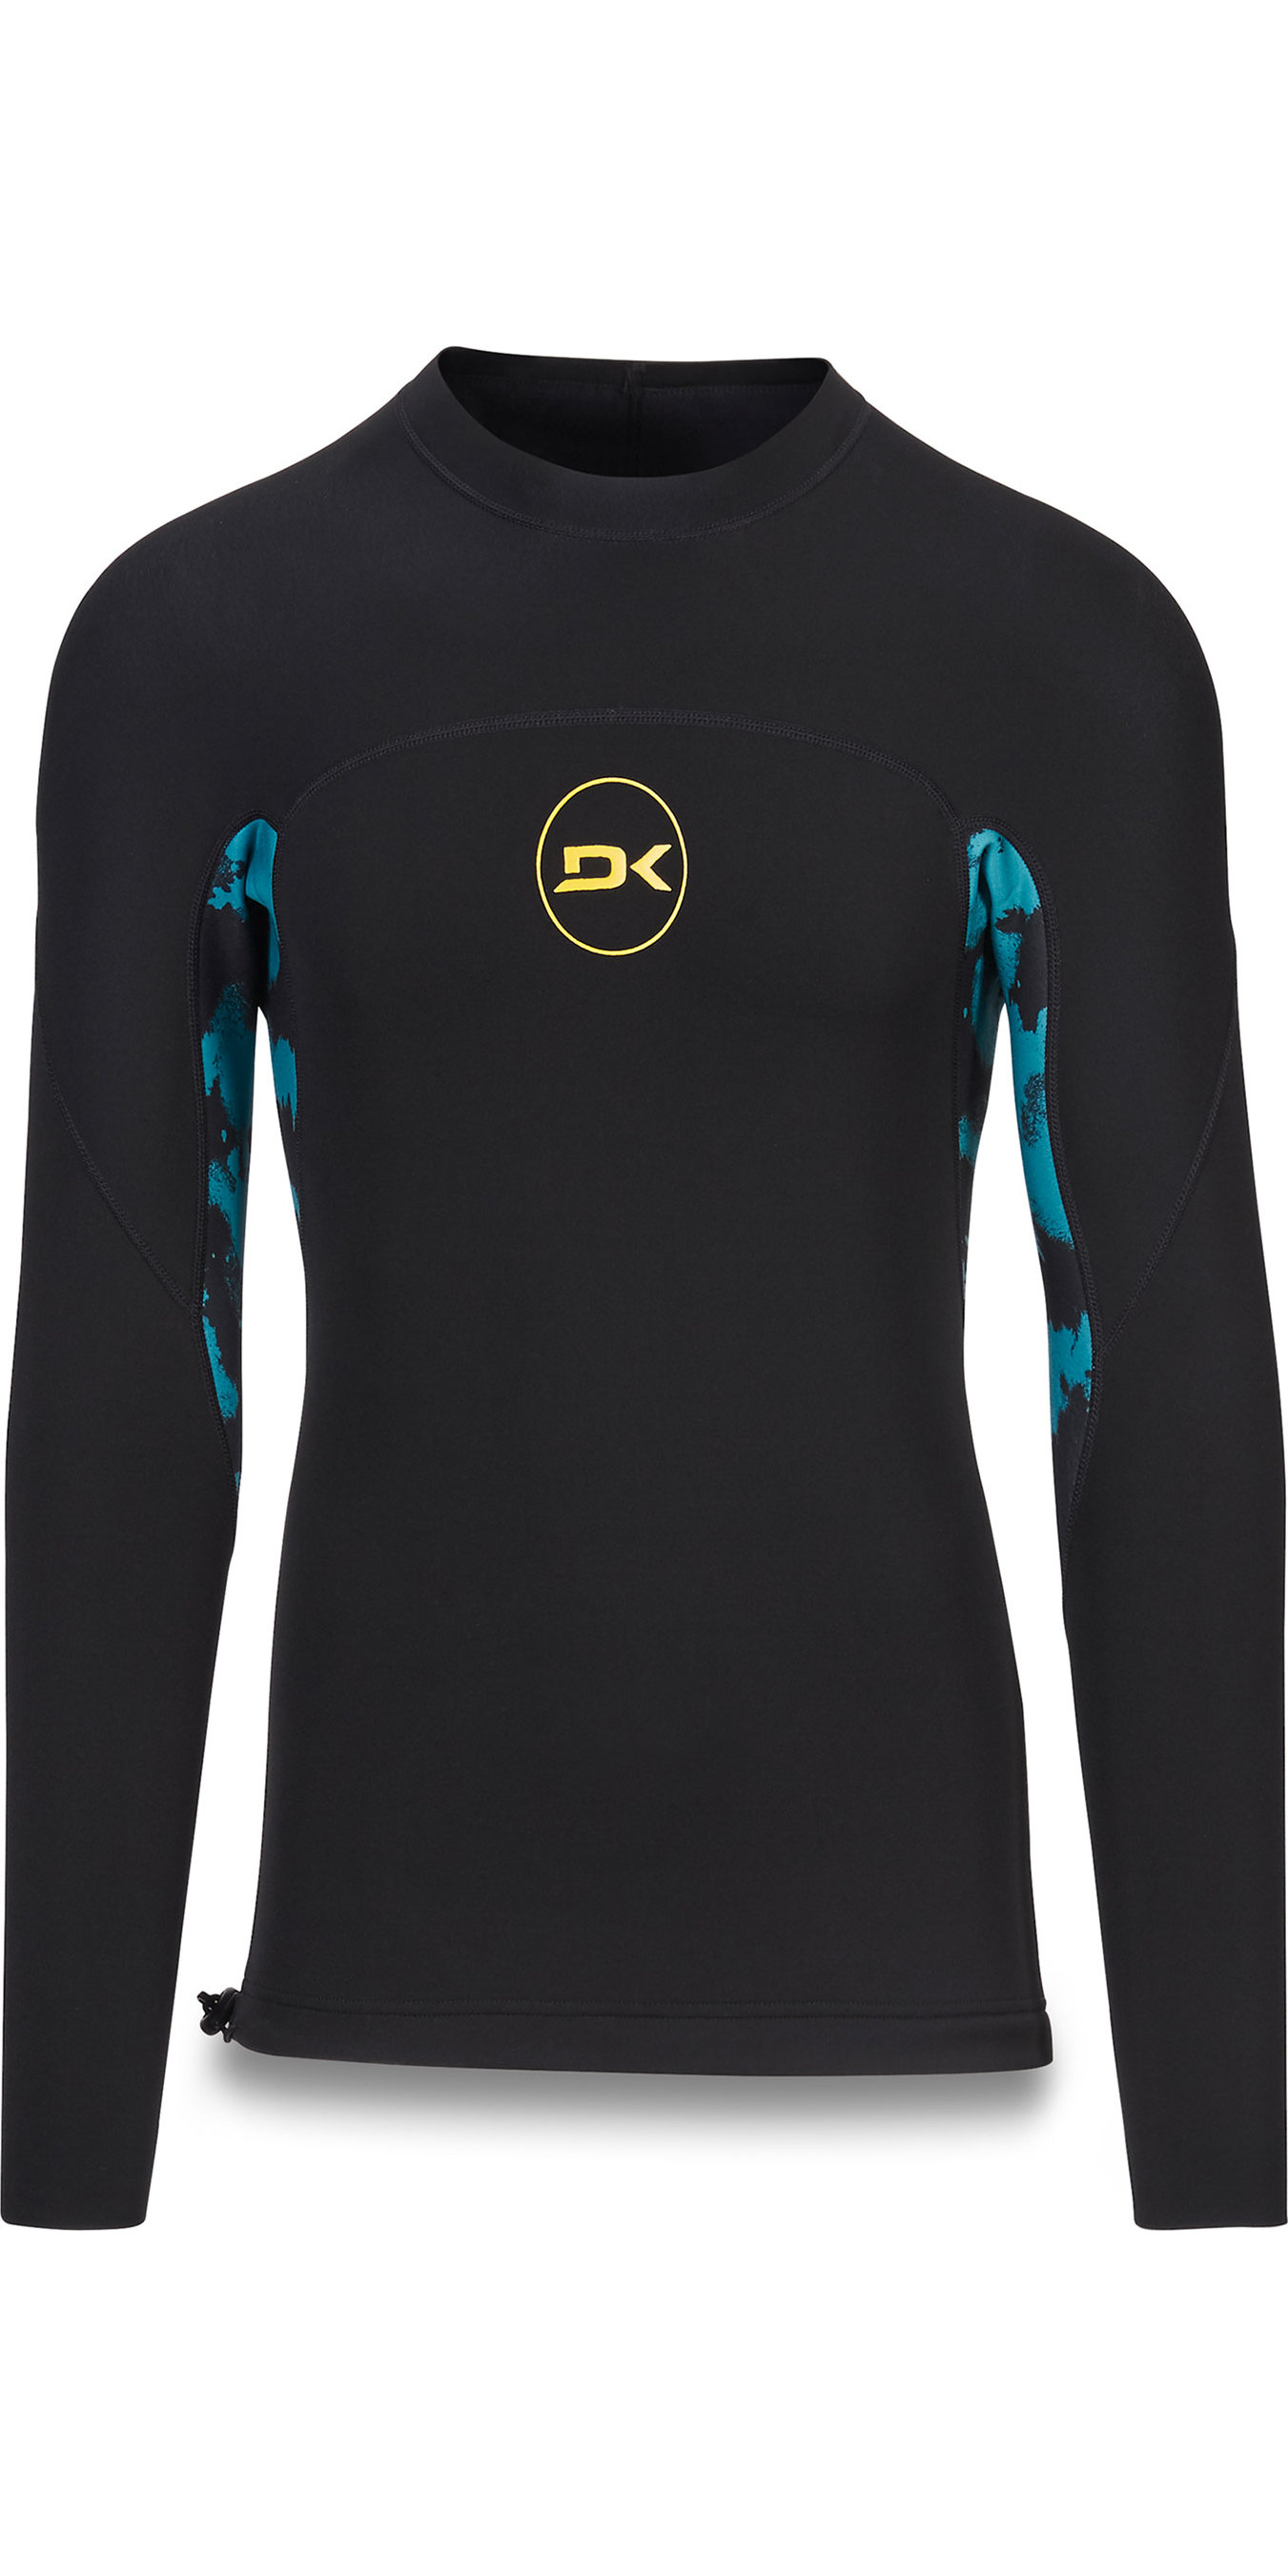 2019 Dakine Mens Long Sleeve 1mm Flatlock Neoprene Top Seaford Thrillium 10002256